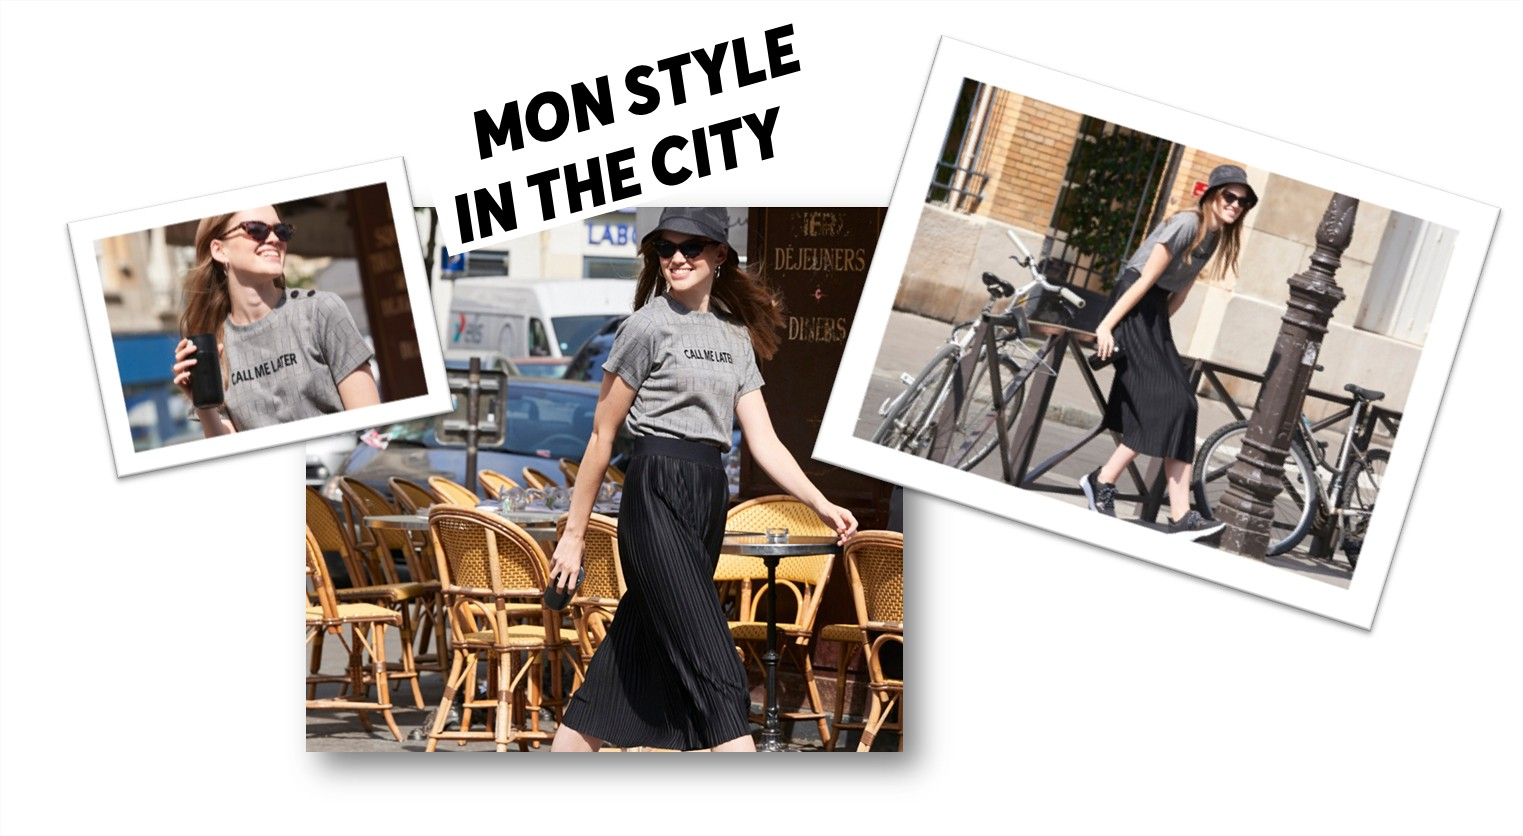 Mon Style in the City